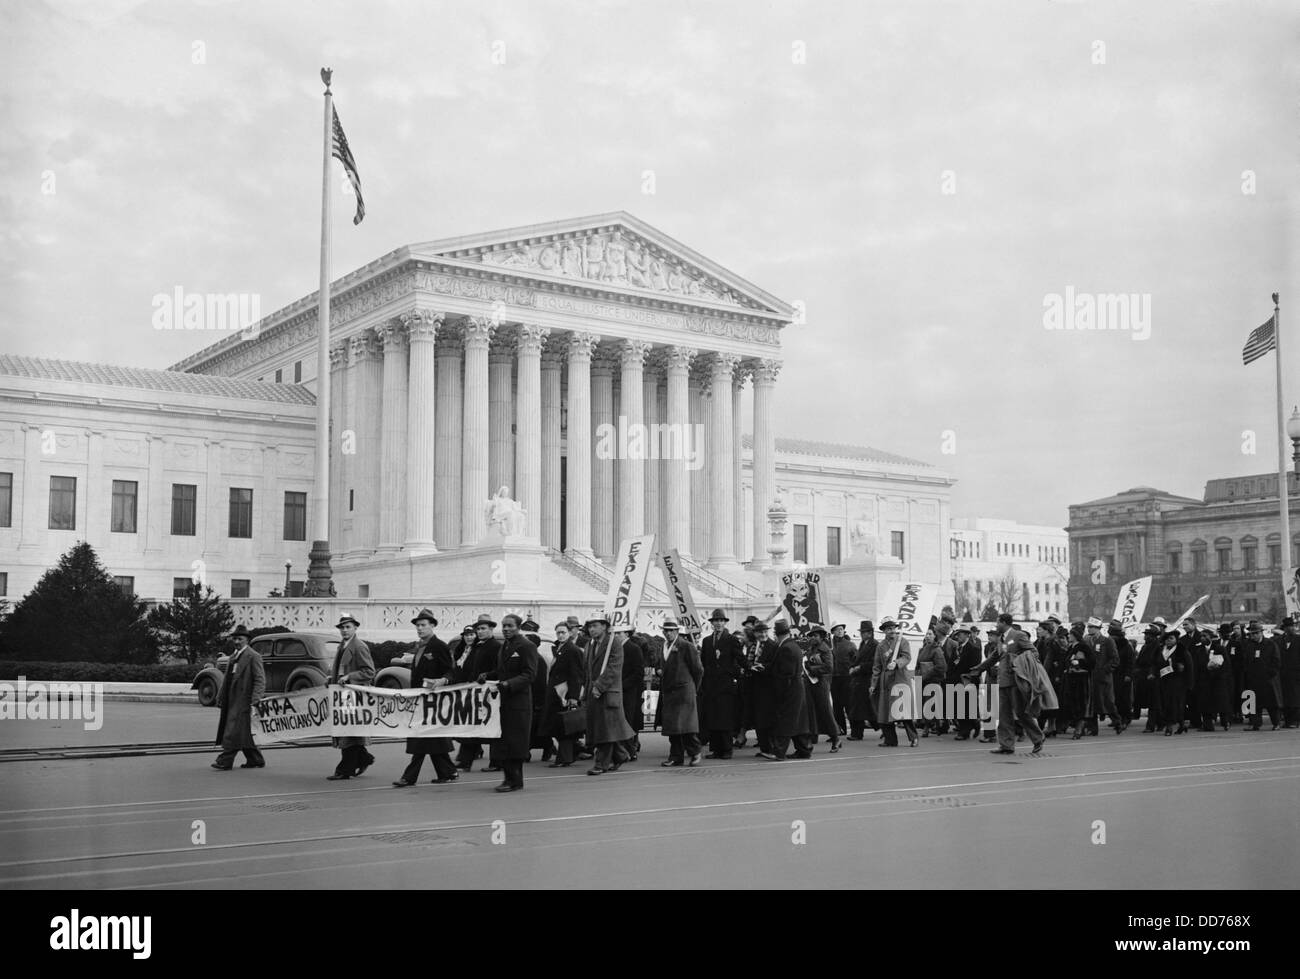 WPA protest march in front of the U.S. Supreme Court, Jan. 16, 1937. A multiracial group of men and women demonstrated - Stock Image